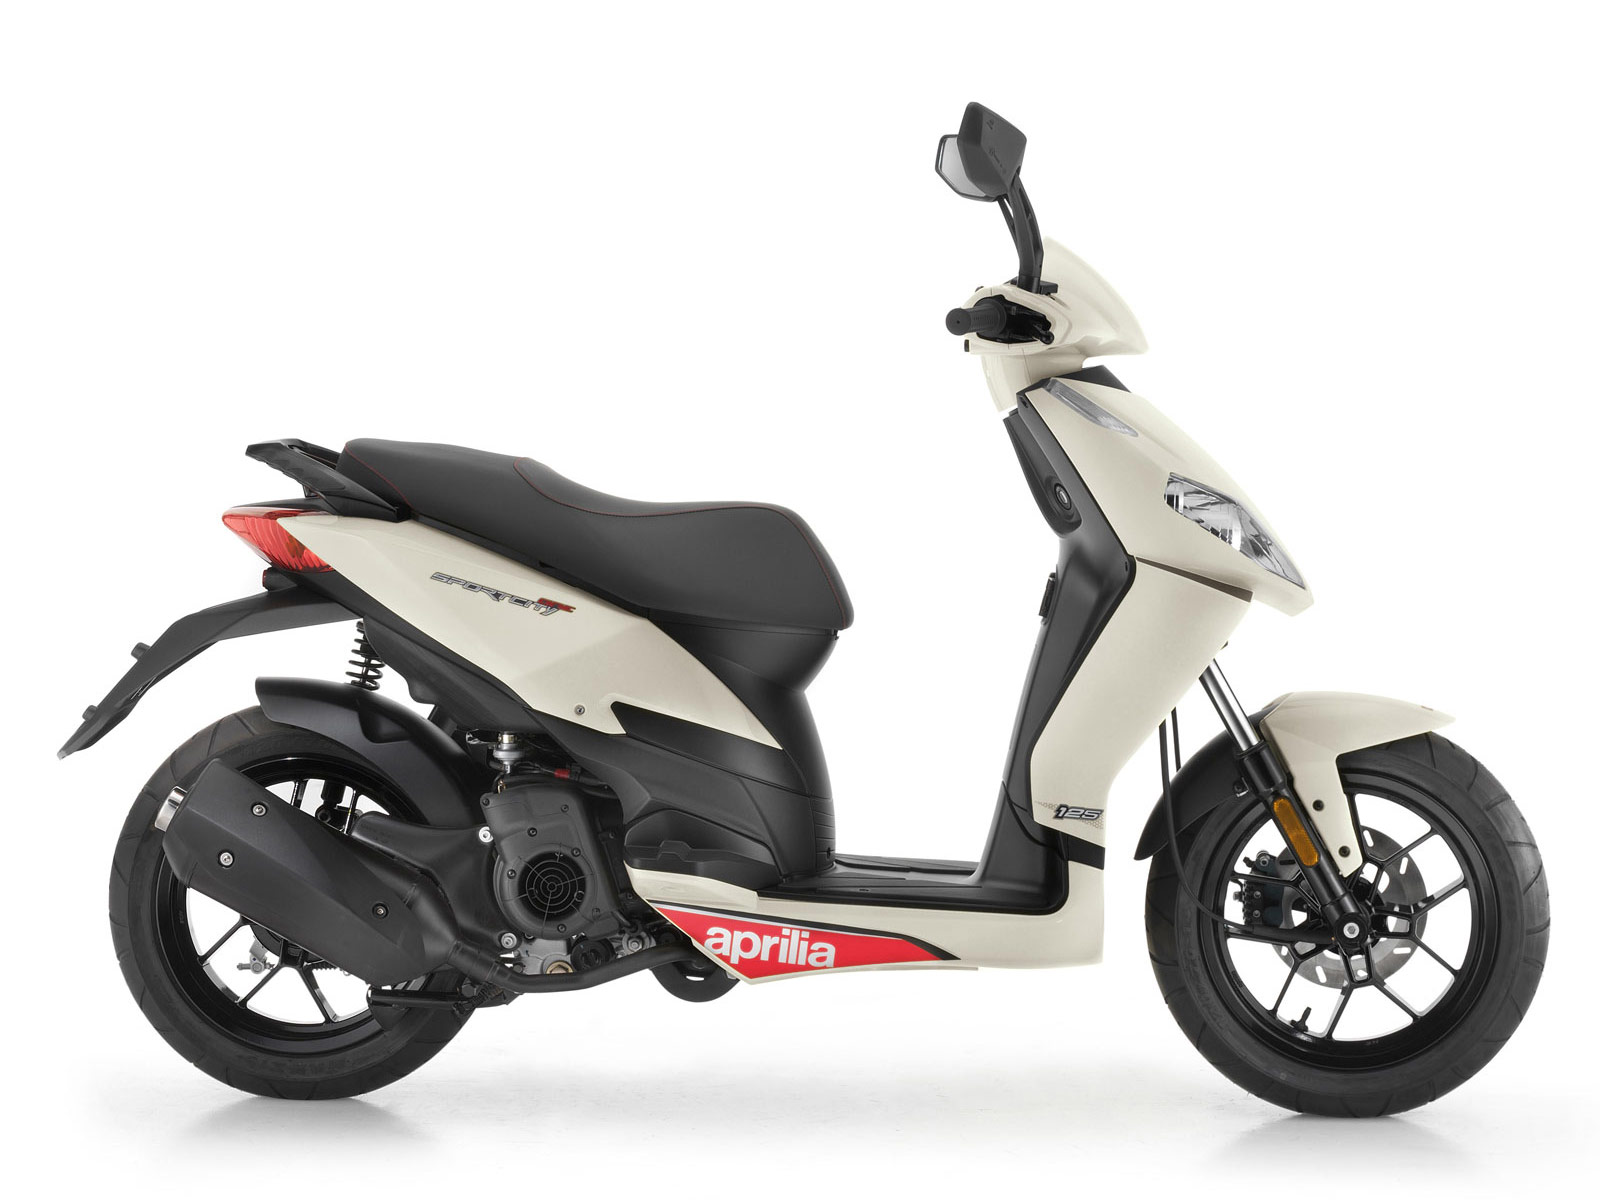 2010 aprilia sportcity one 50 street scooter pictures. Black Bedroom Furniture Sets. Home Design Ideas